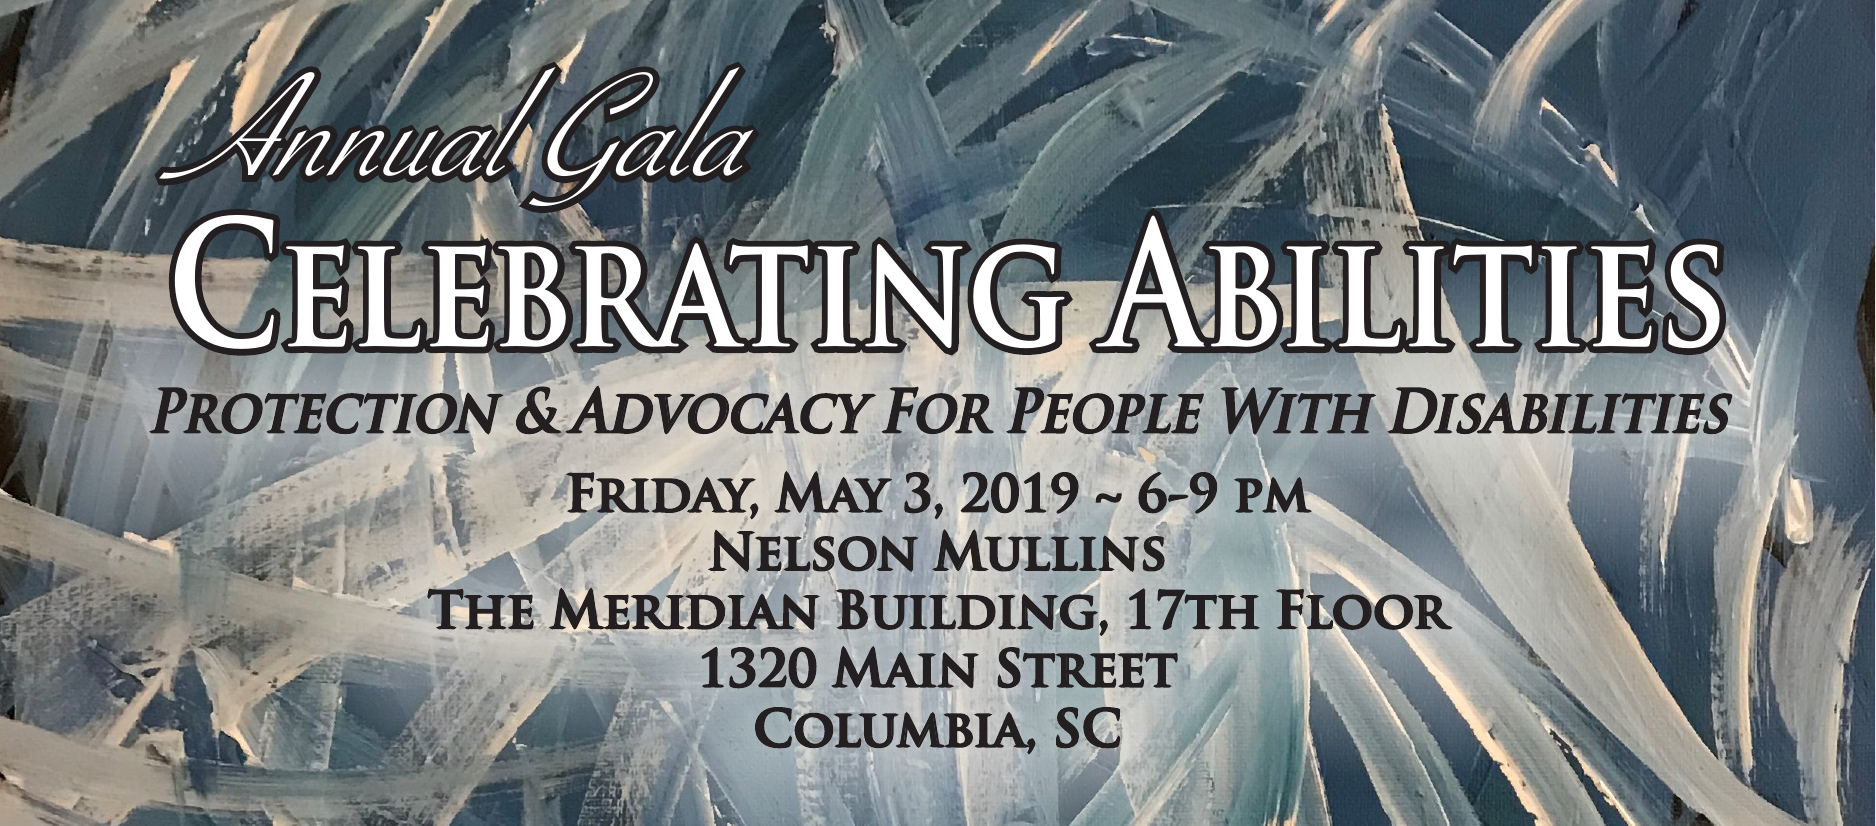 Celebrating Abilities Annual Gala